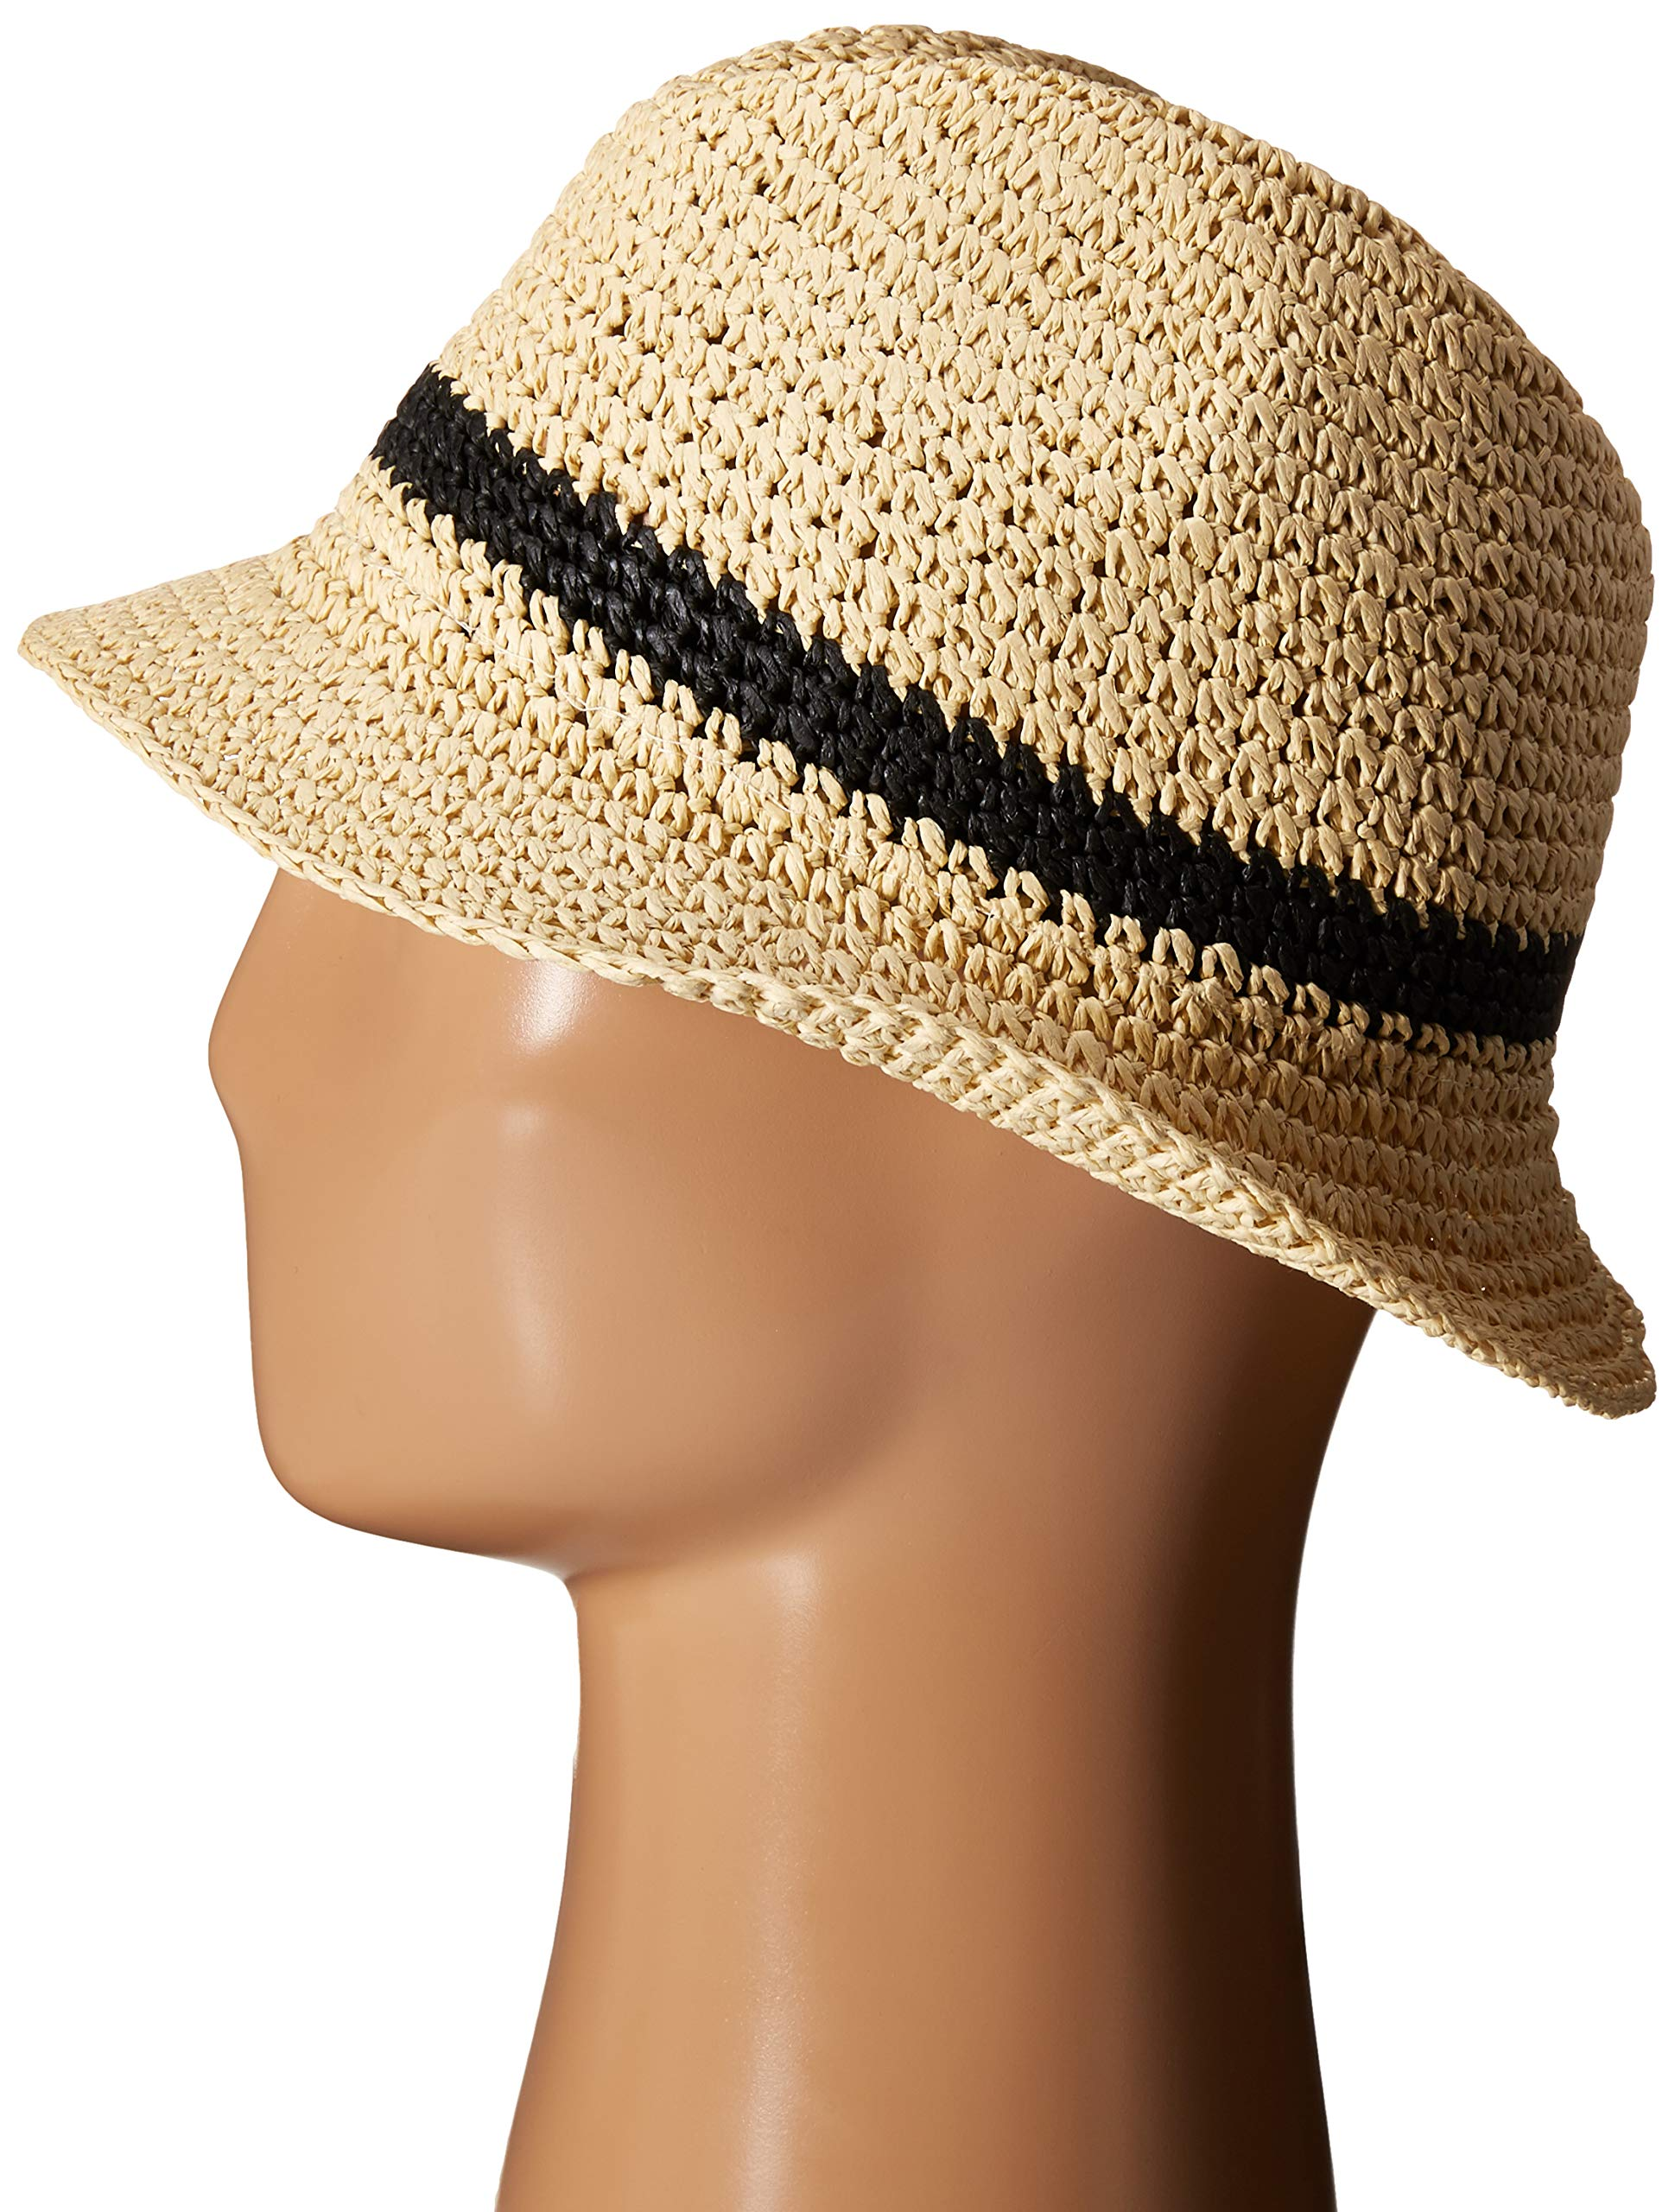 Kate Spade New York Women's Crochet Packable Fedora Natural/Black One Size by Kate Spade New York (Image #2)